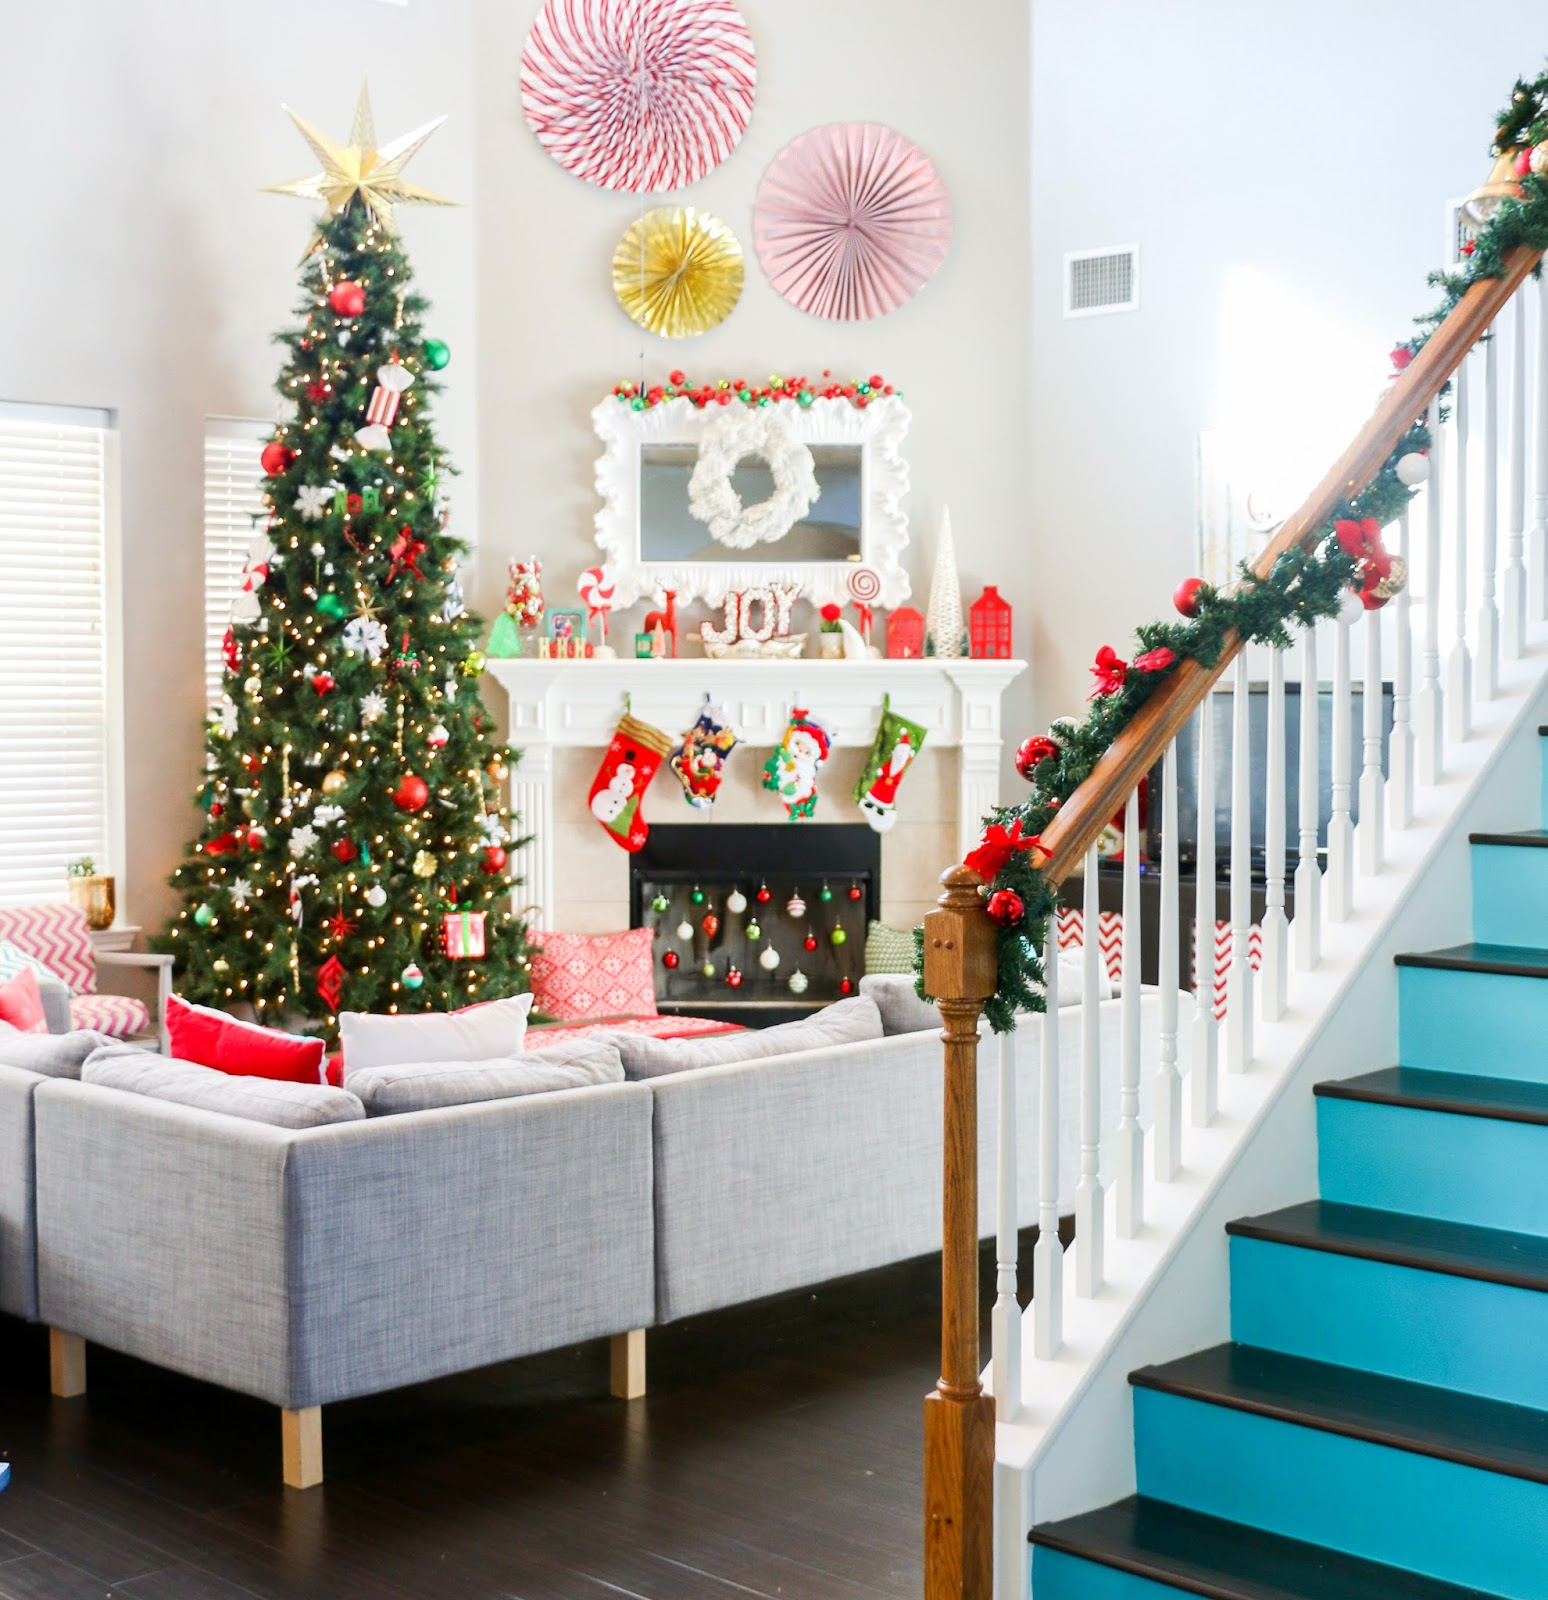 A kailo chic life christmas home tour part 2 the living for Salon xmas decorations